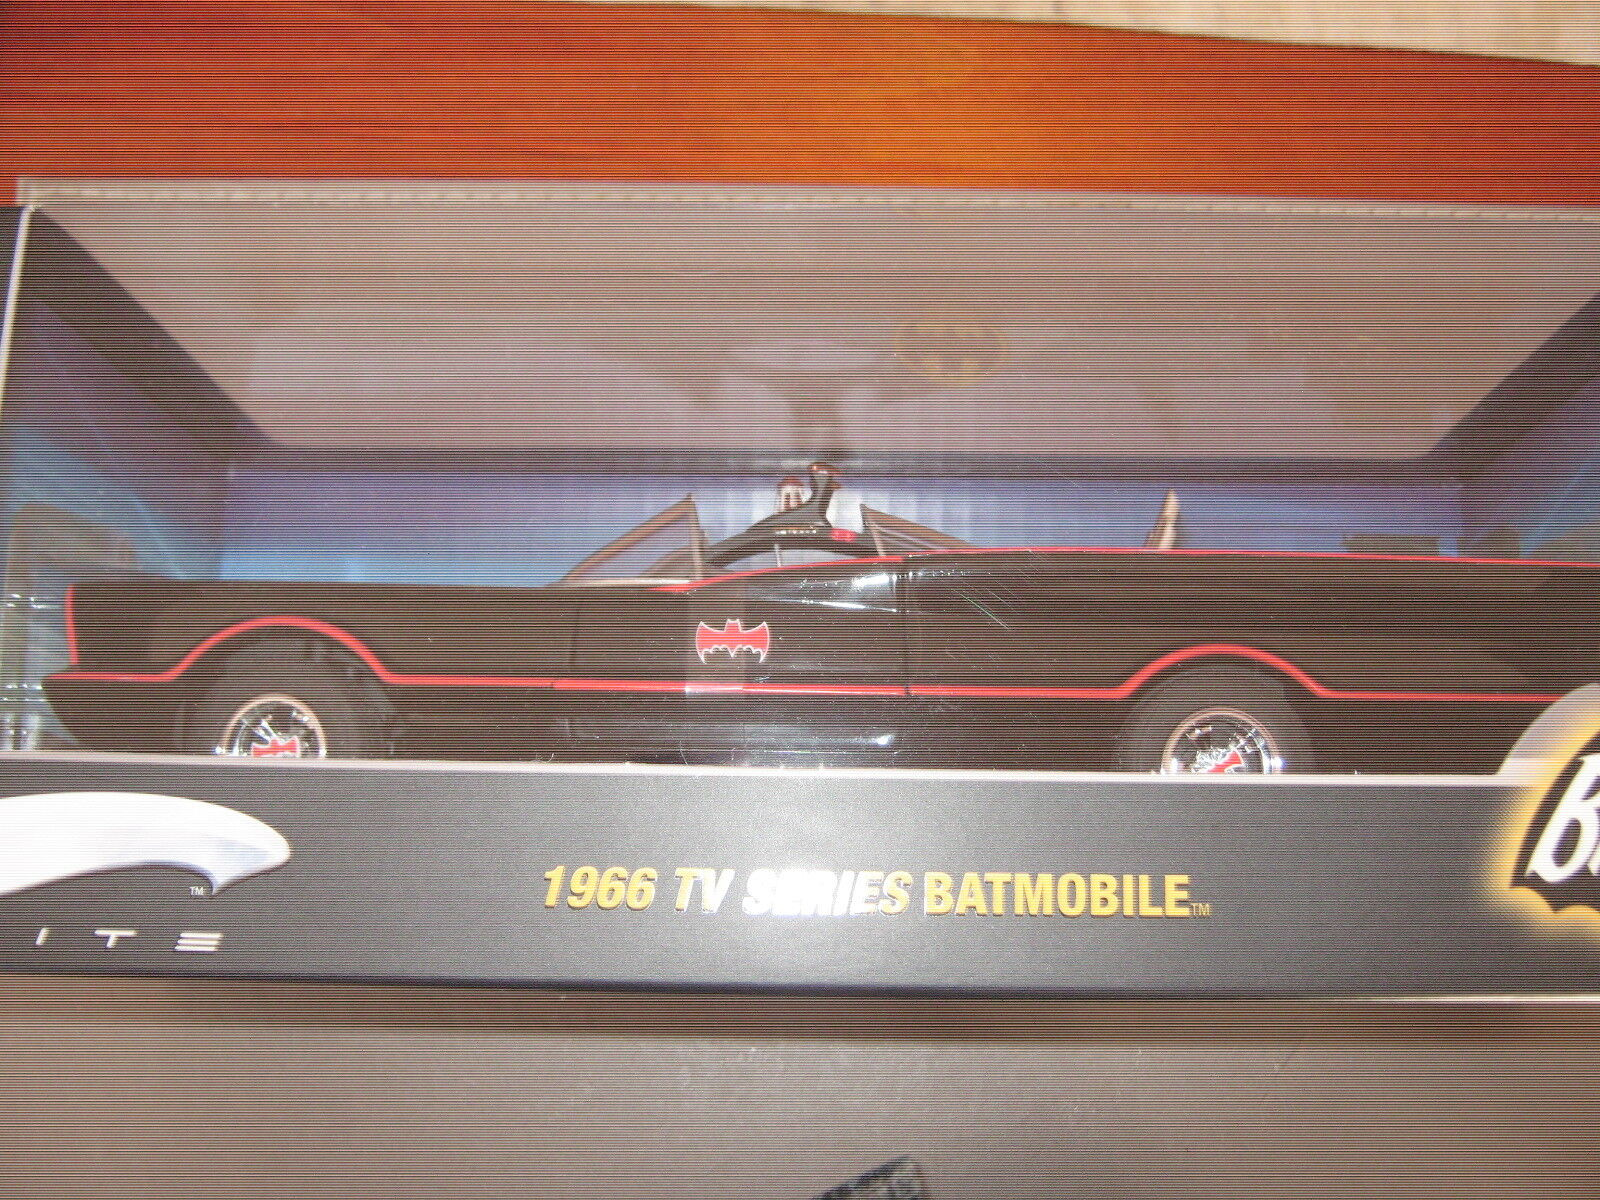 Hot wheels Batmobile  tv series 1966 1/18 1st series Elite made 2007 Mint boxed